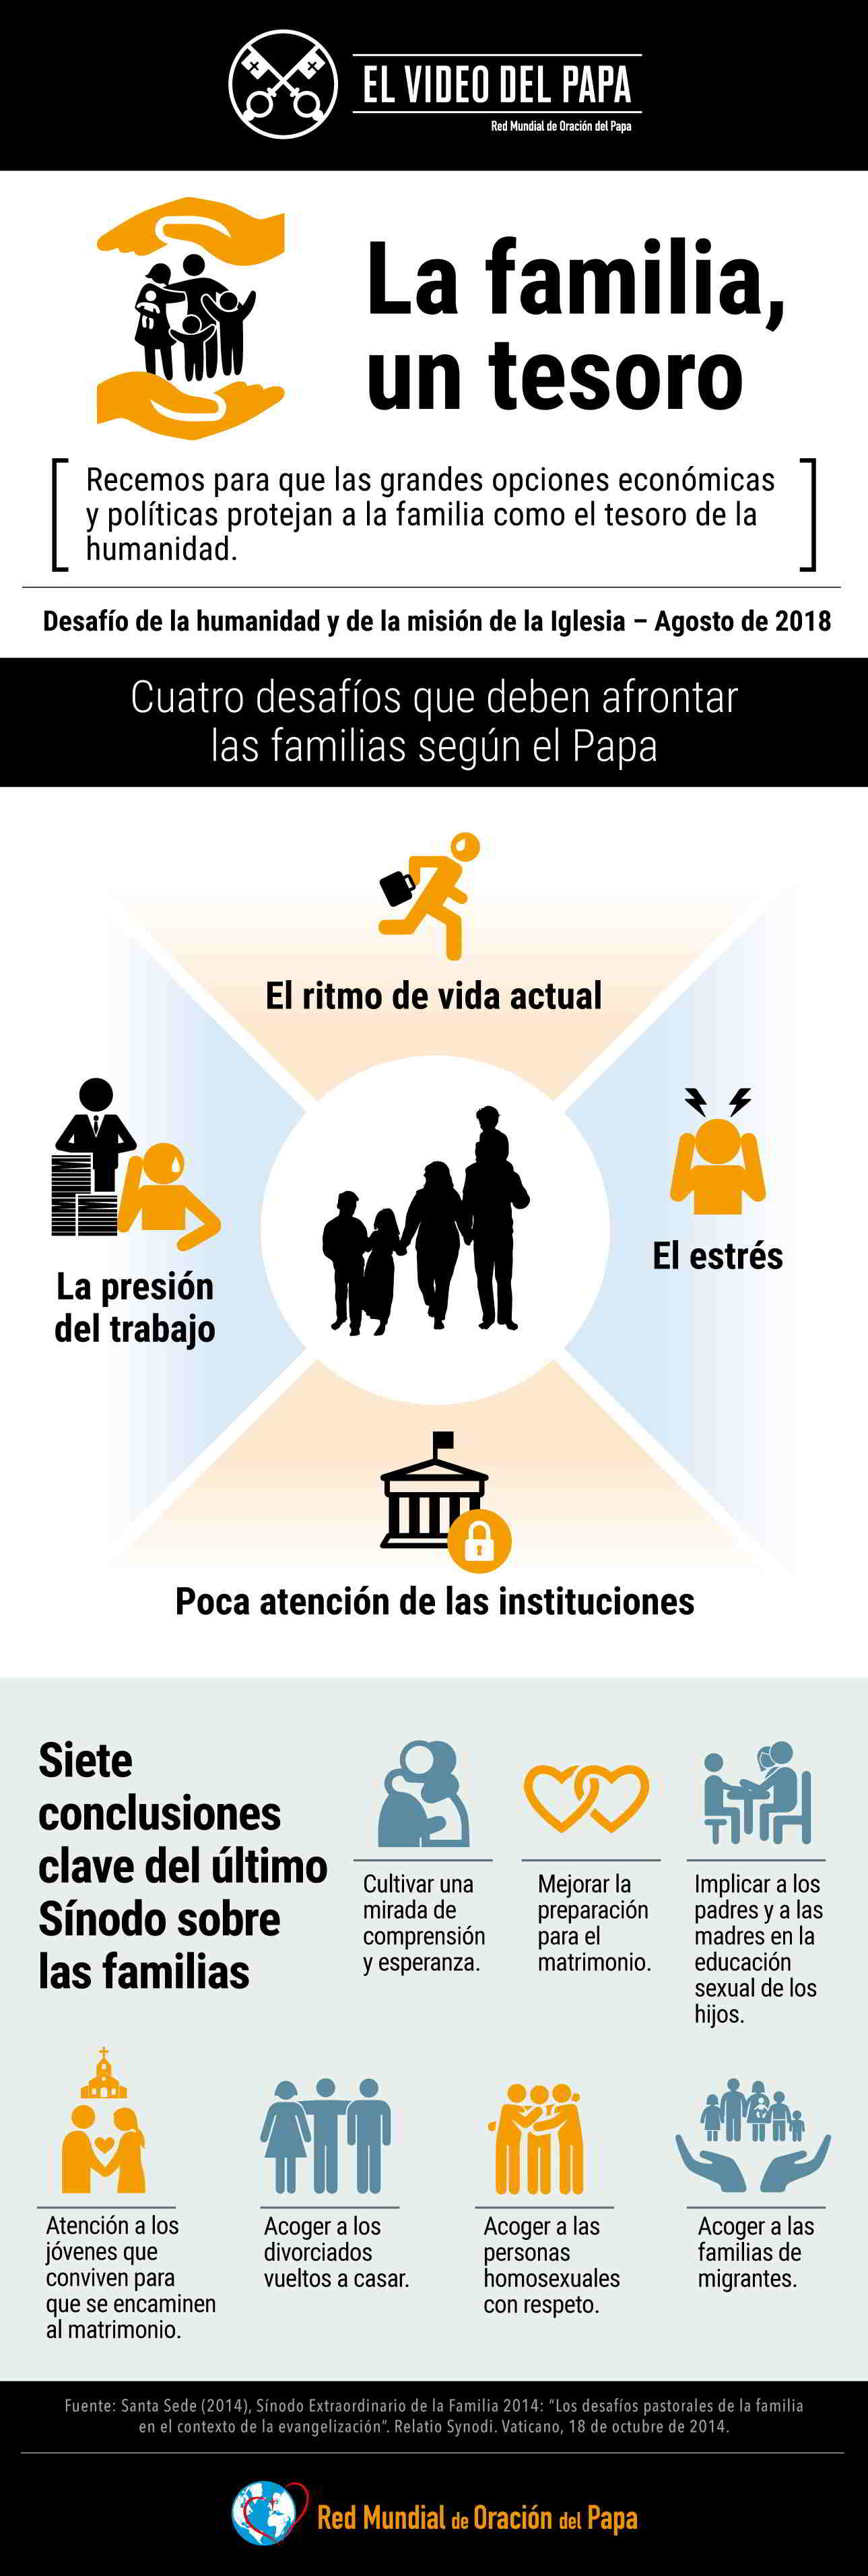 Infographic - The Pope Video 8 2018 - The Treasure of Families - 2 Spanish